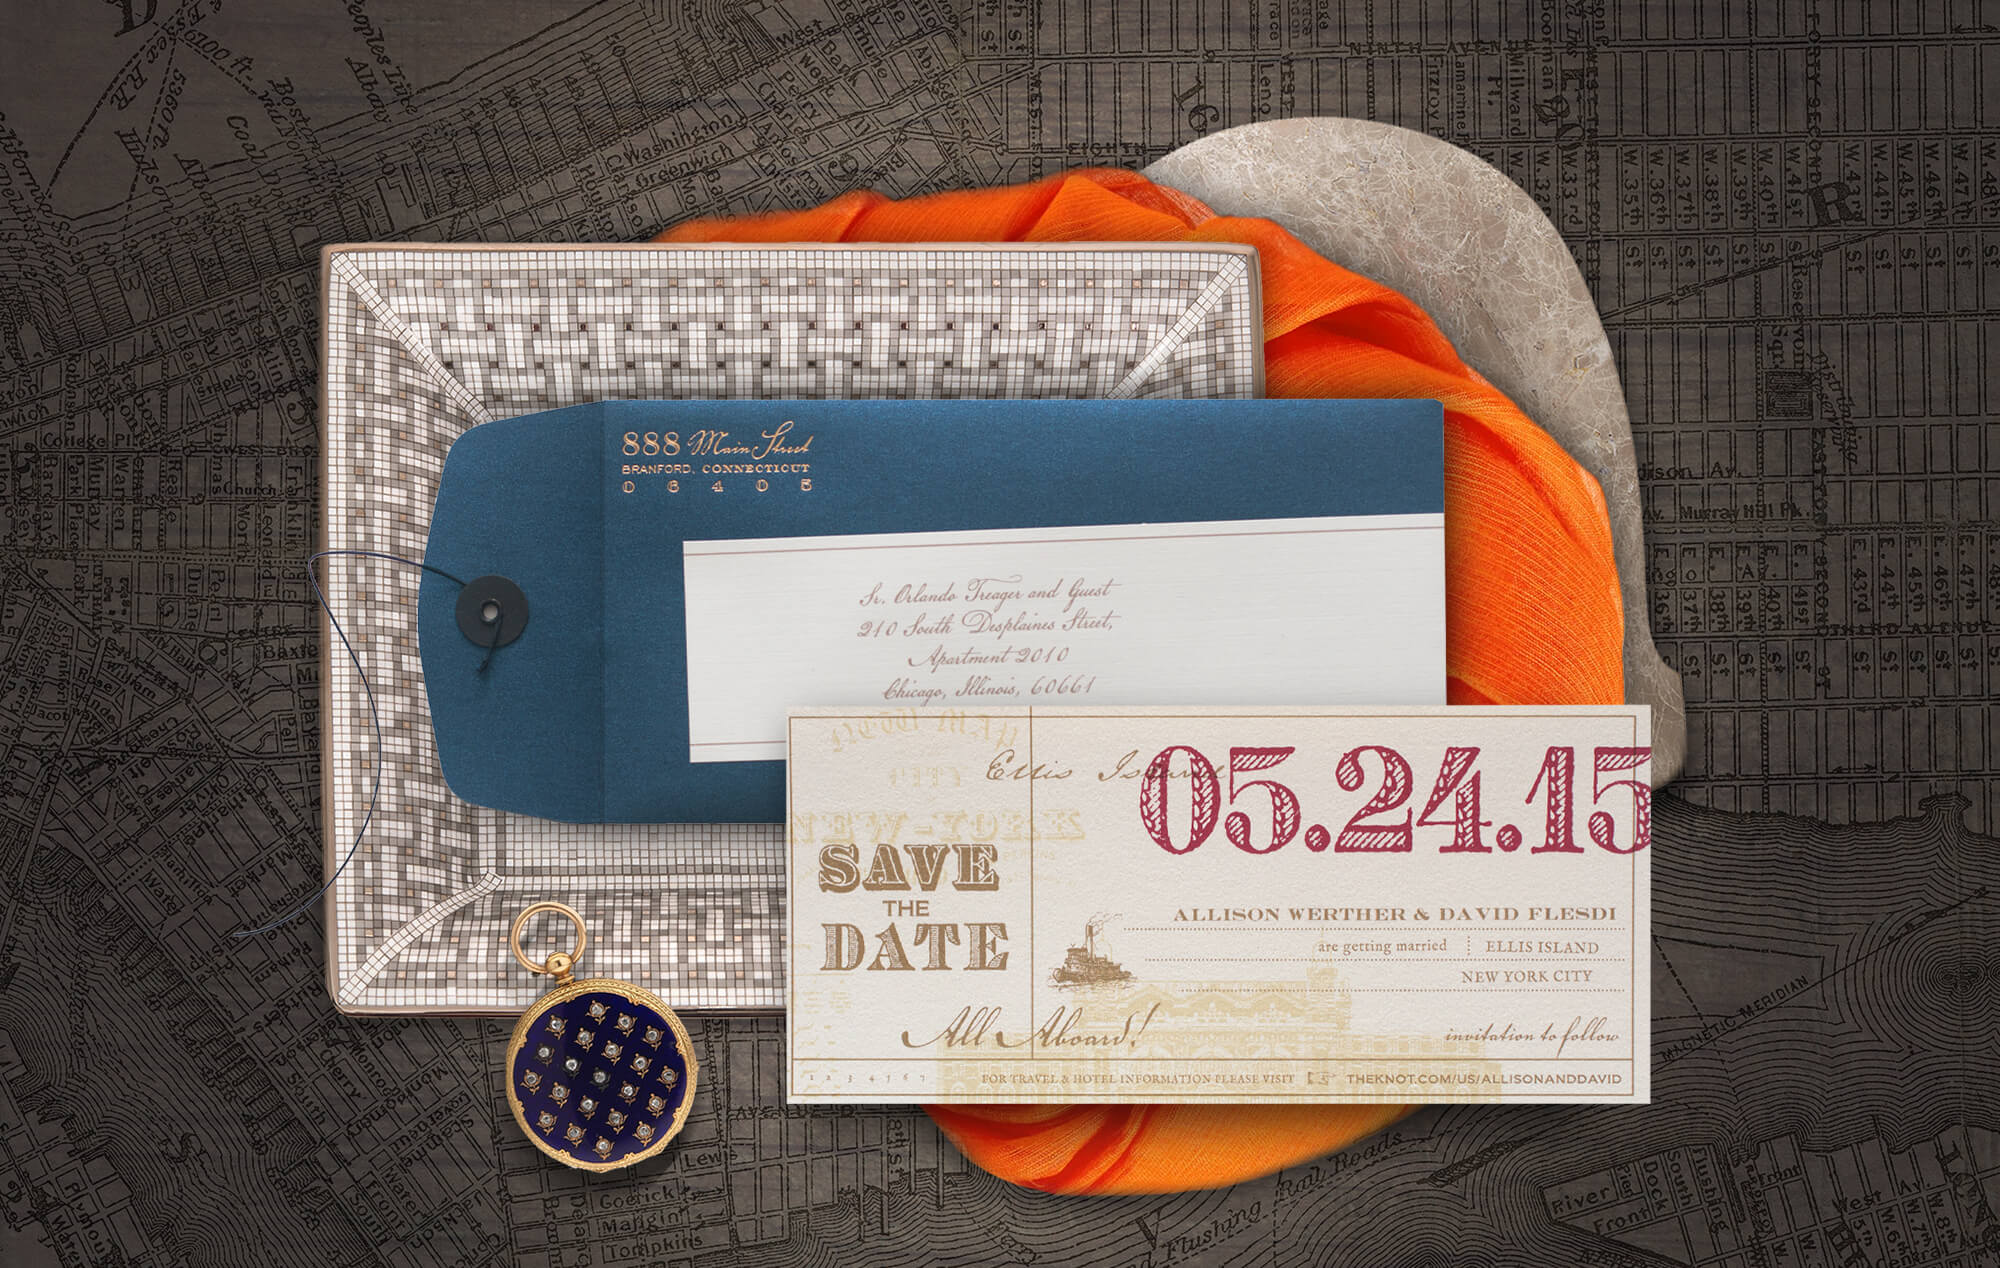 Ellis Island vintage save the date inspired by travel tickets